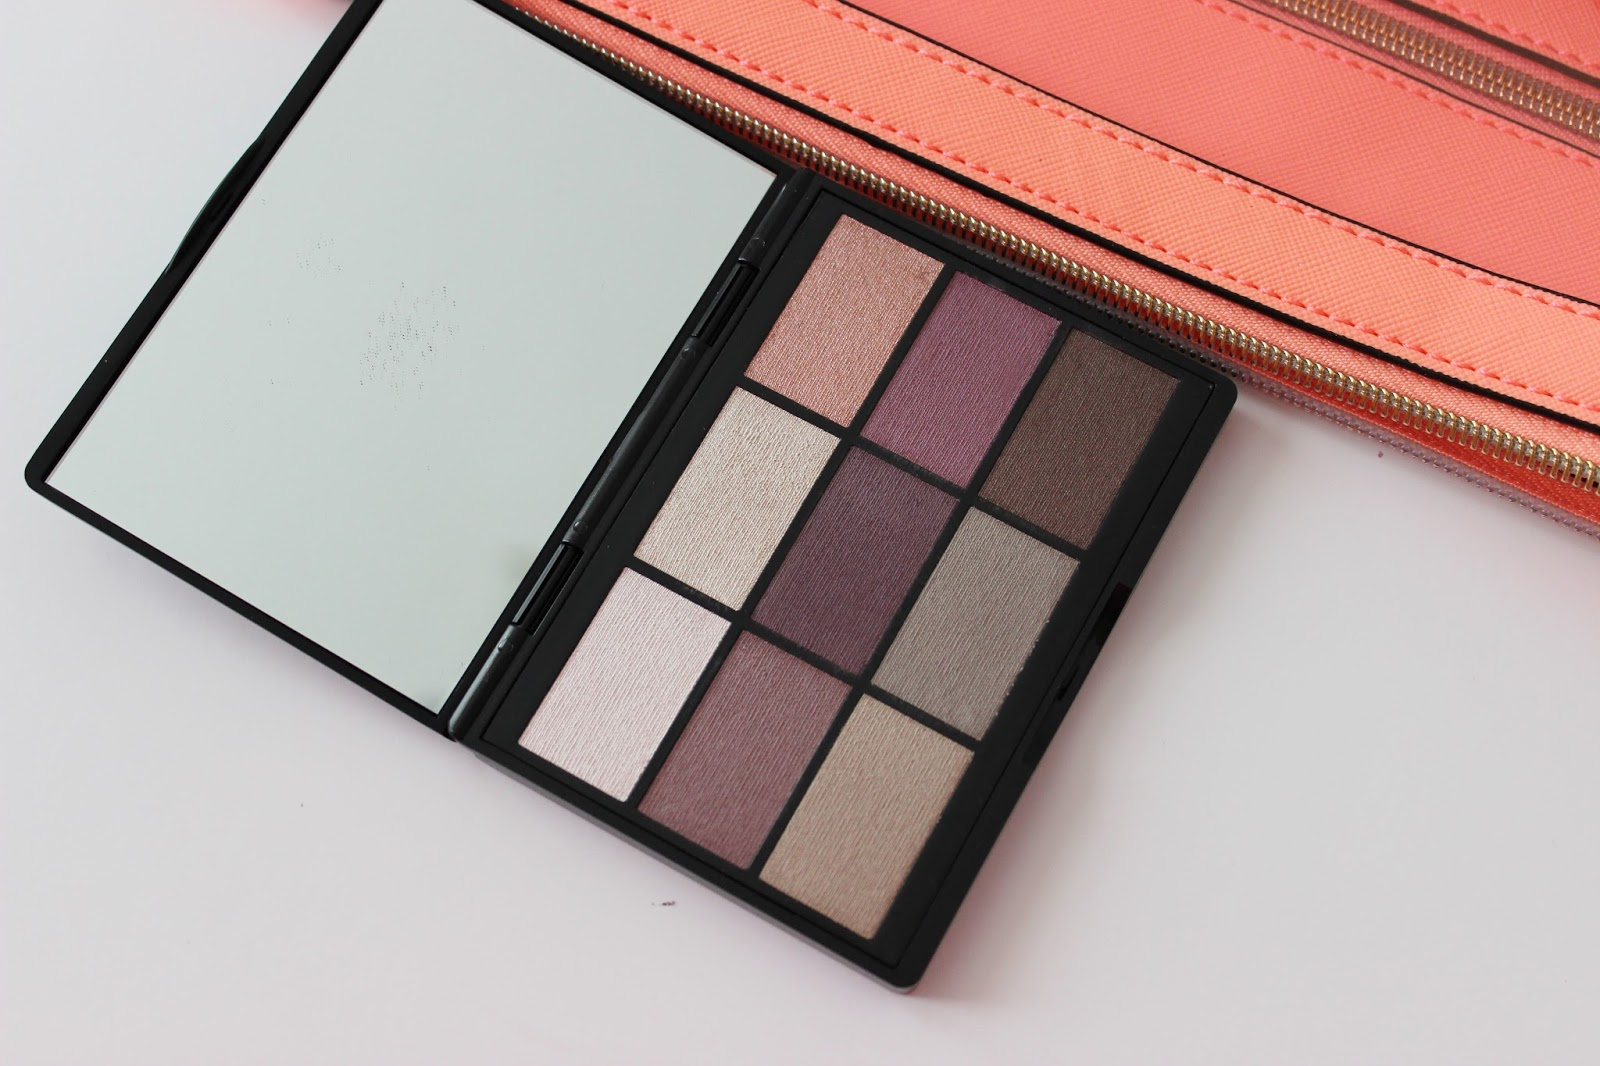 GOSH to enjoy in New York eye shadow palette